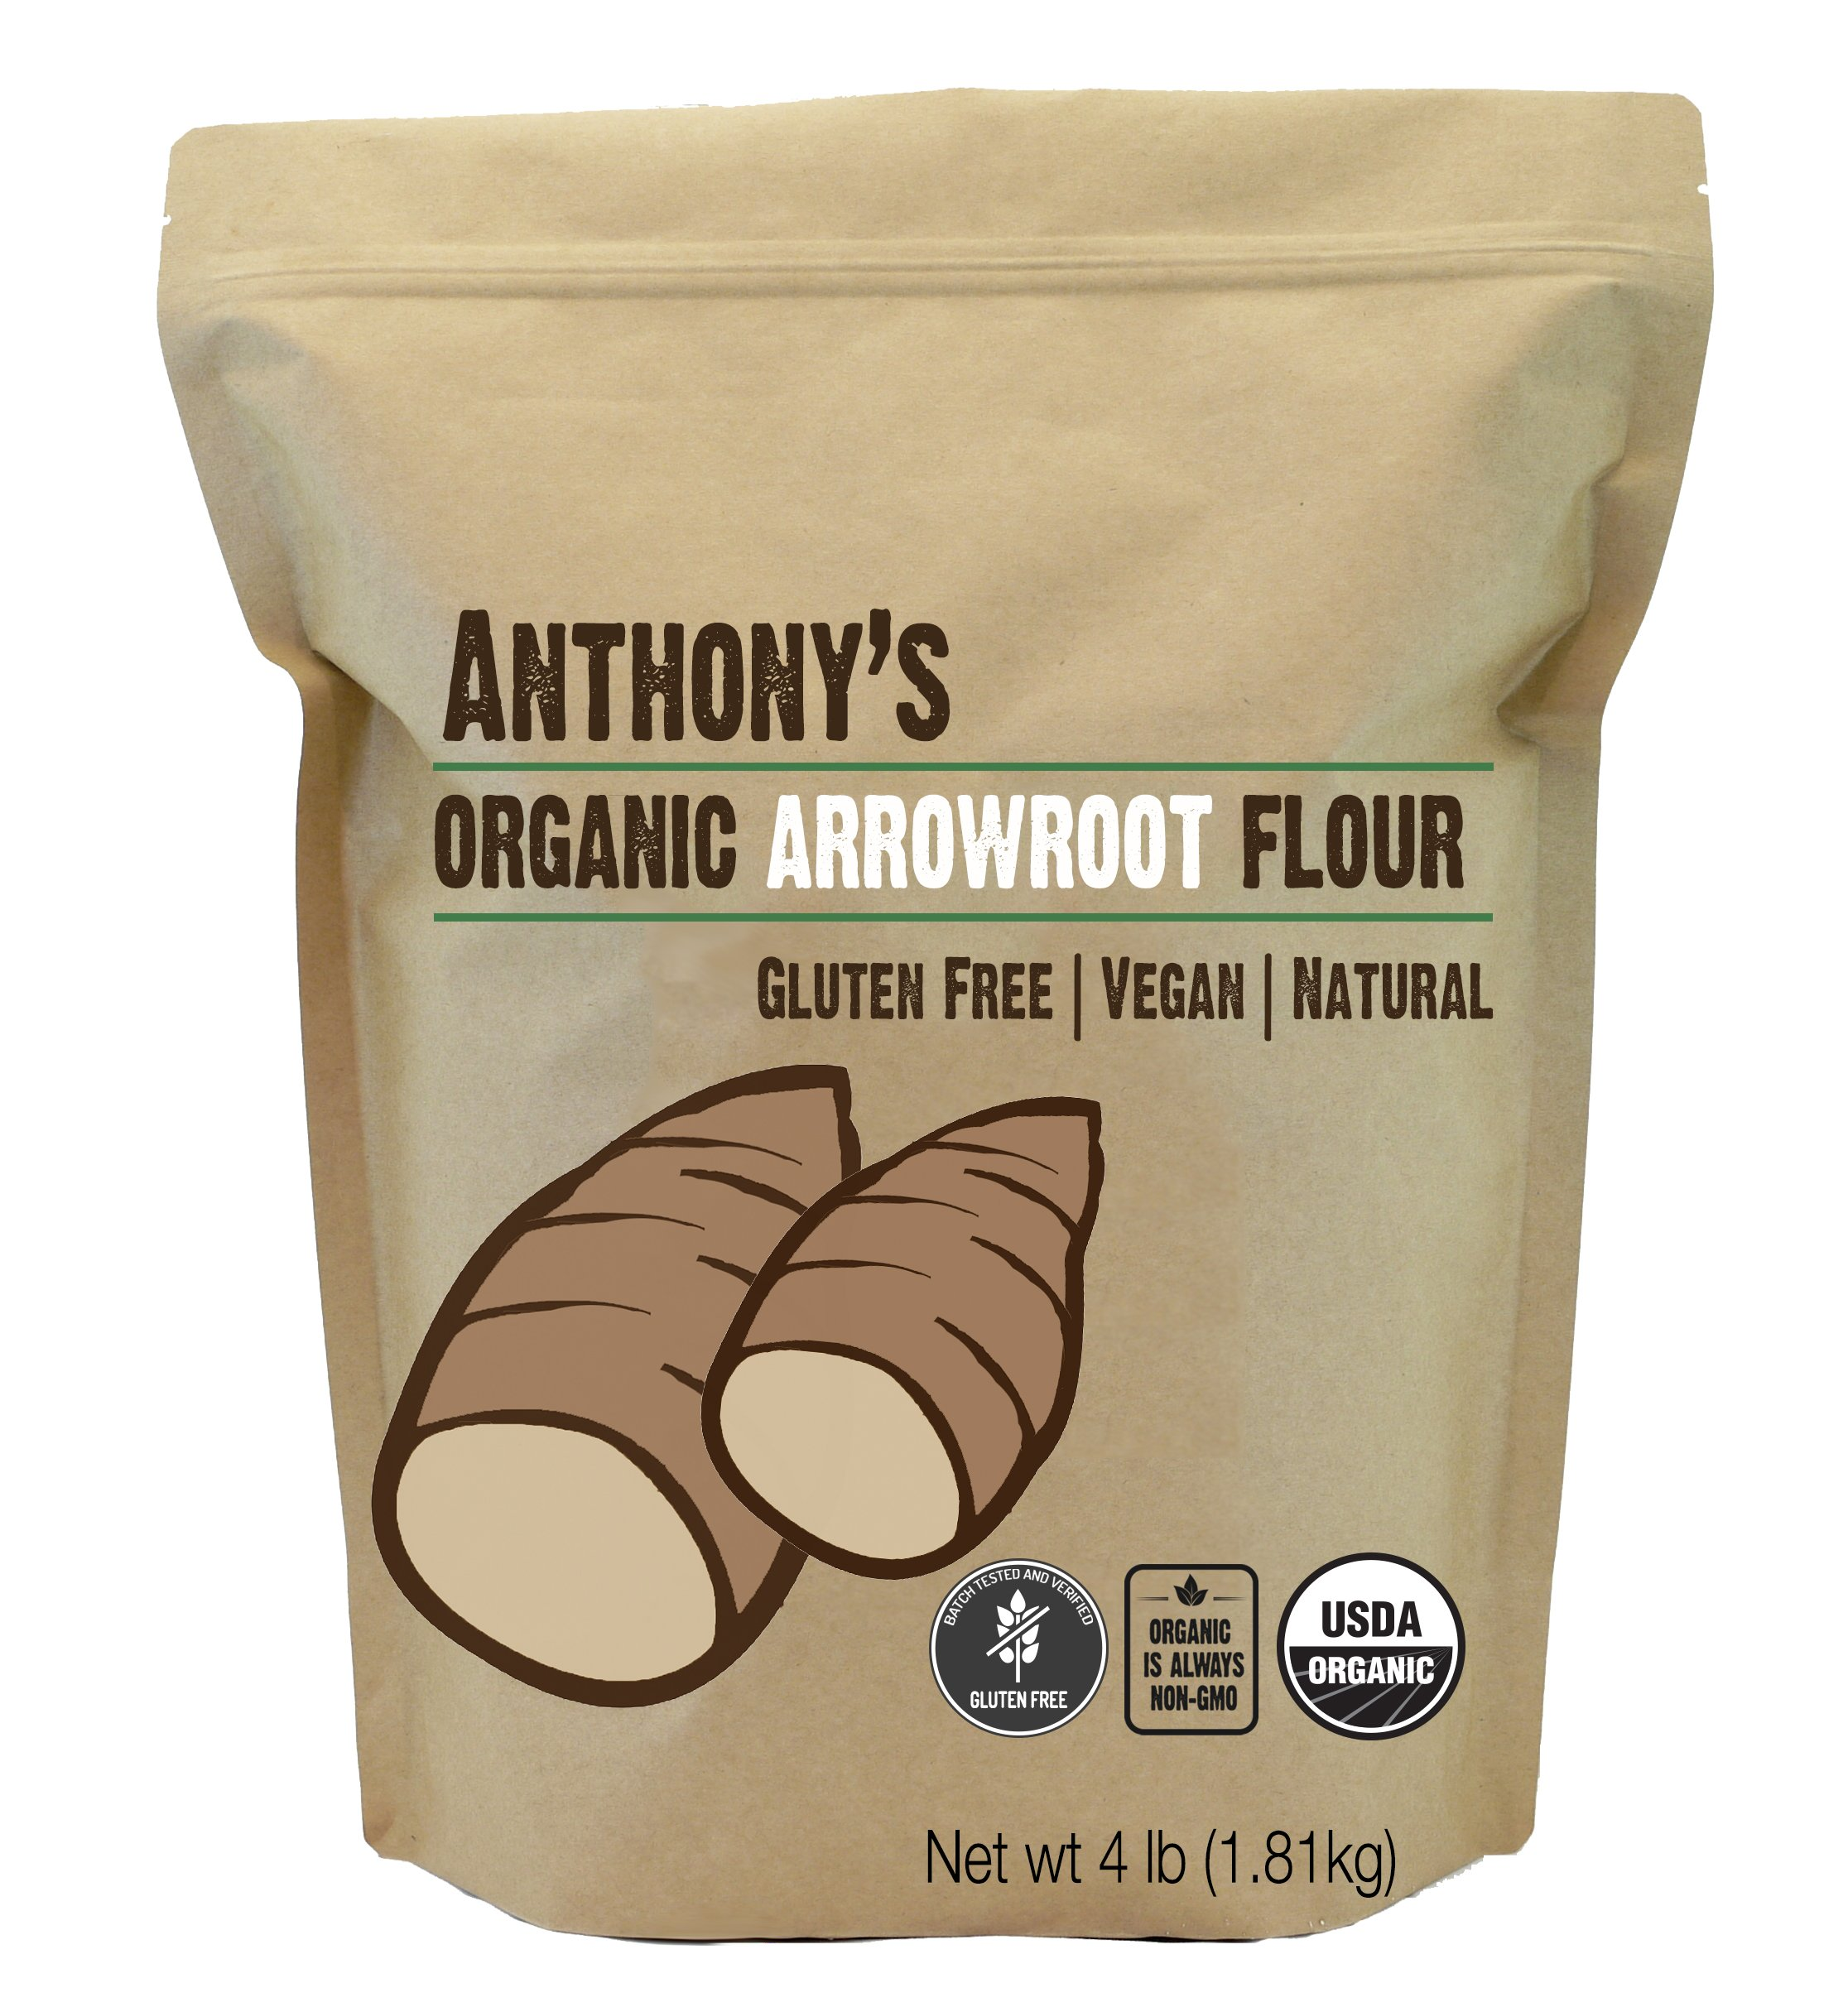 Organic Arrowroot Flour (4lb) by Anthony's, Batch Tested Gluten-Free, Non-GMO